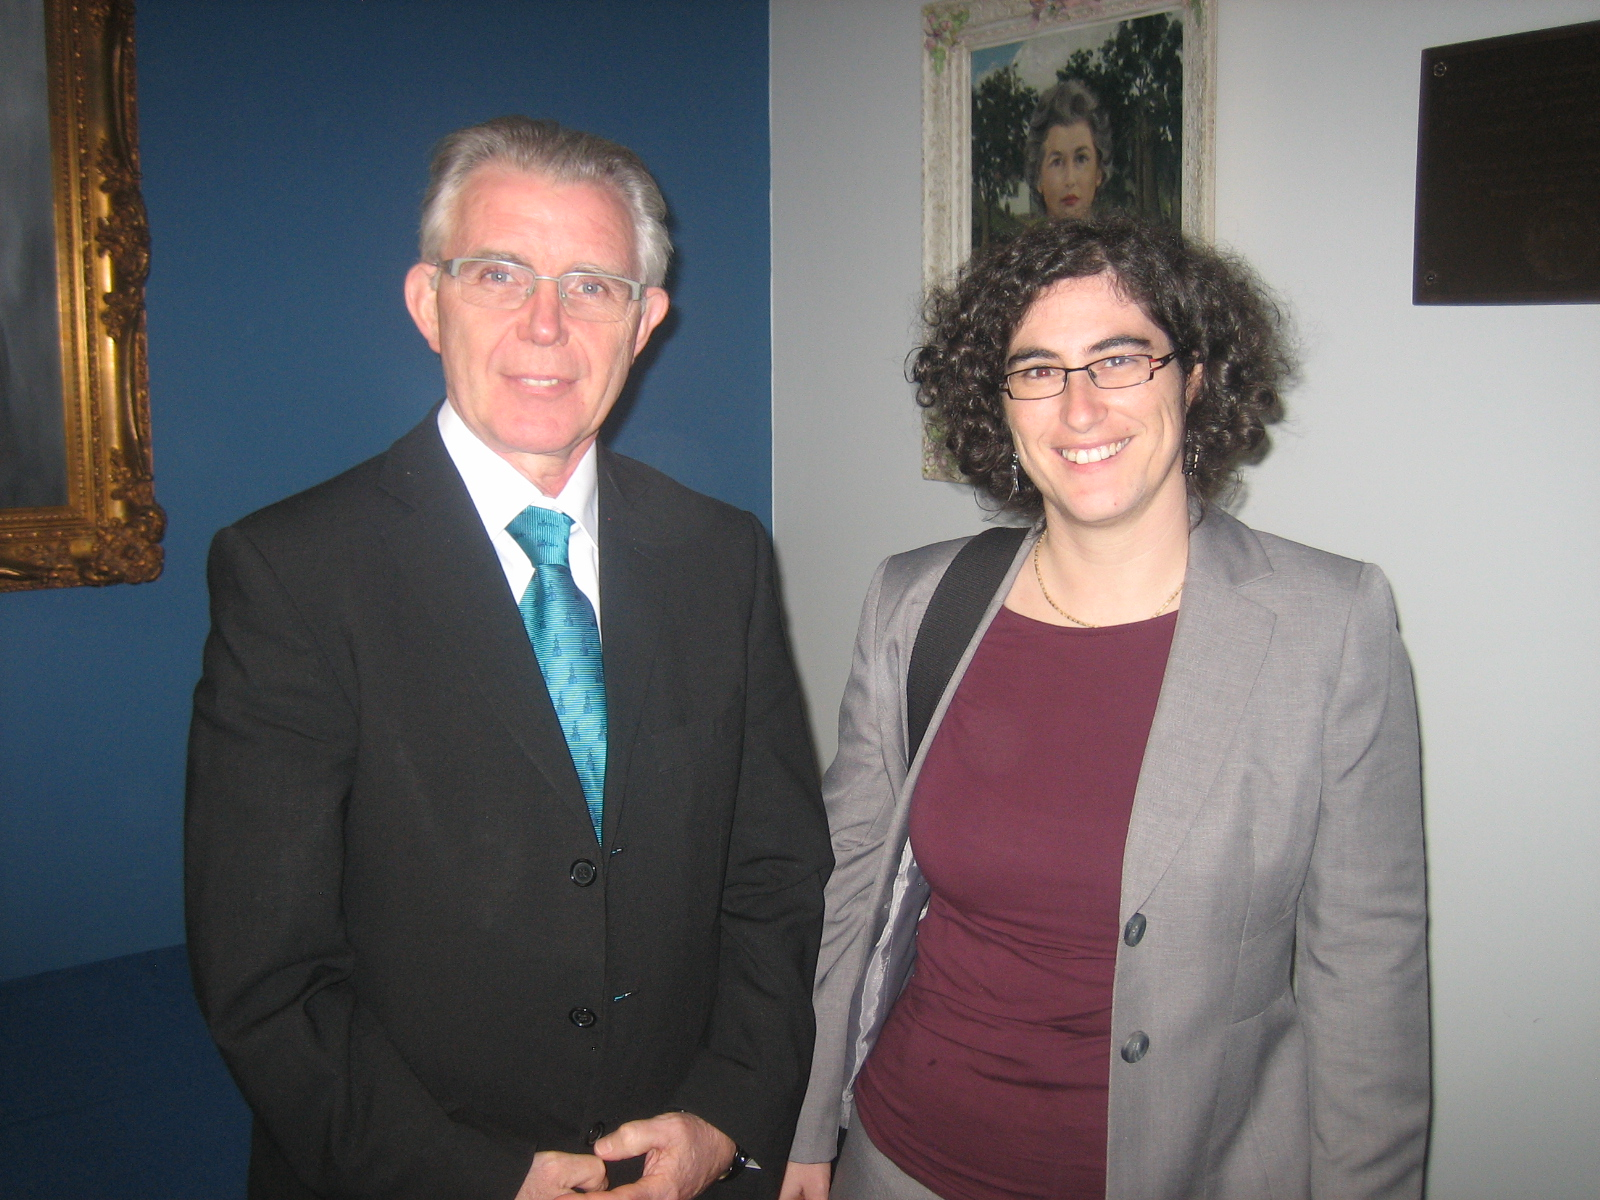 from left: Ronald Hall; Marion Wieser, University of Innsbruck